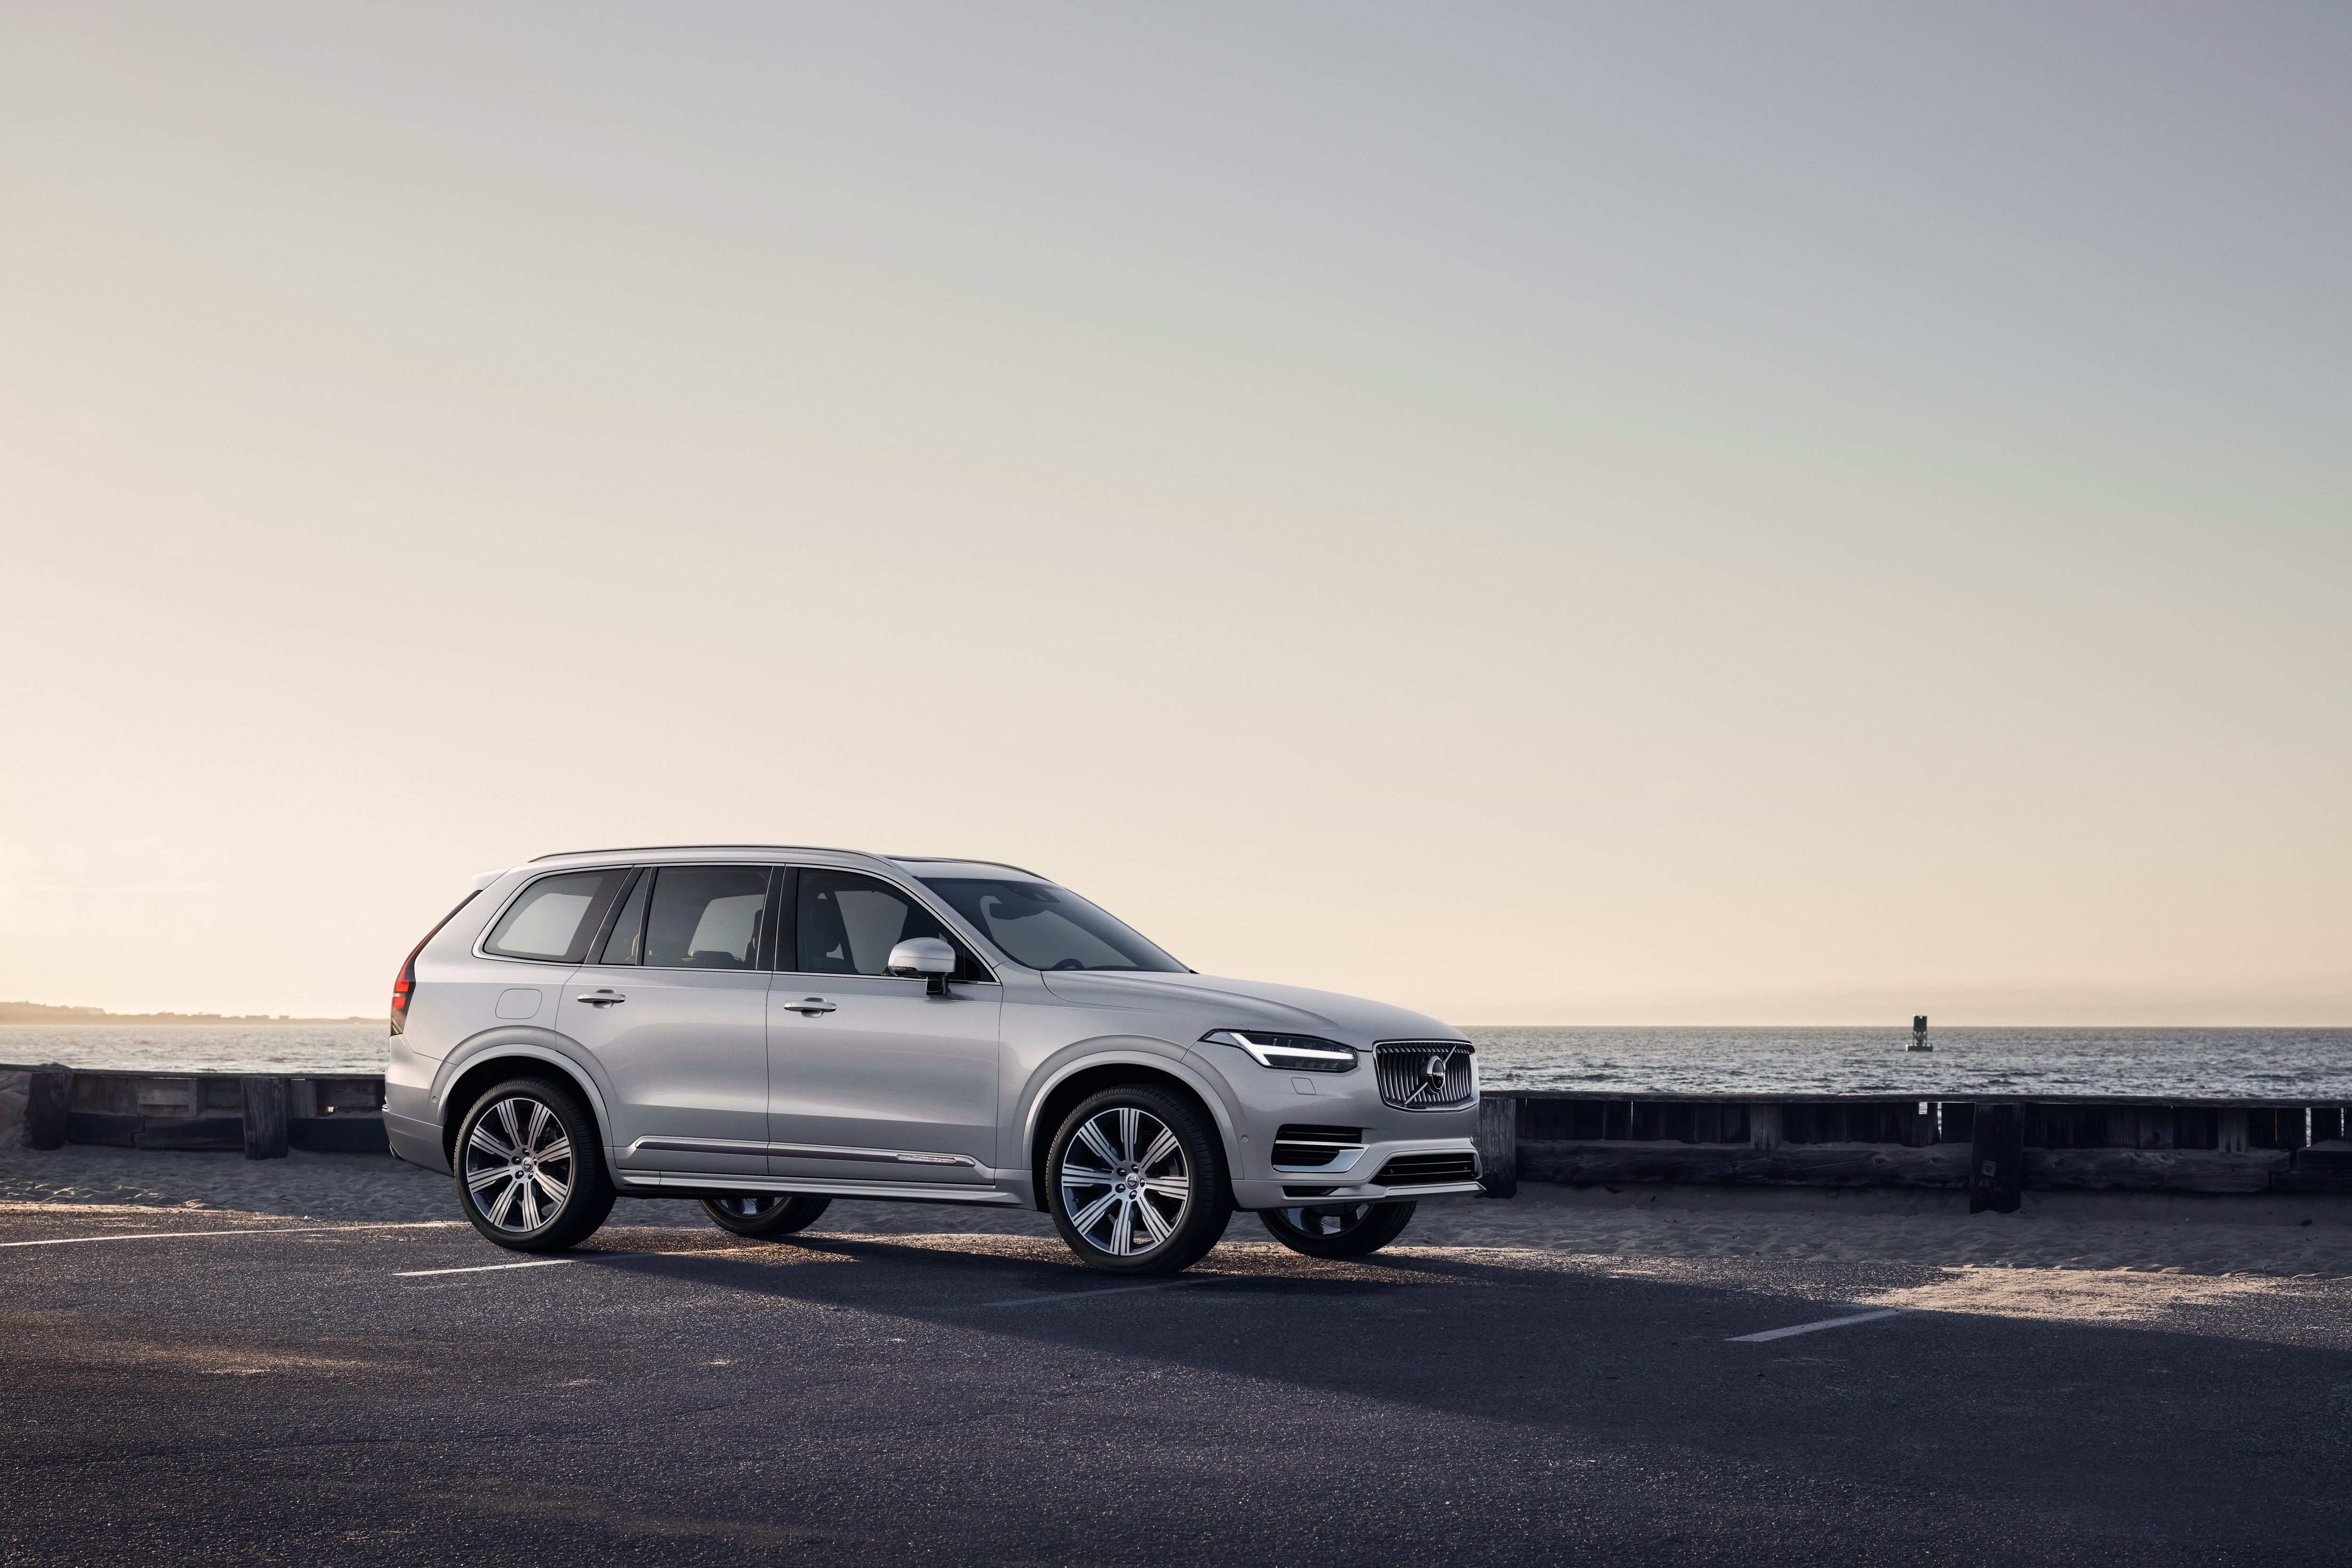 35 All New Volvo Hybrid Cars 2020 Picture